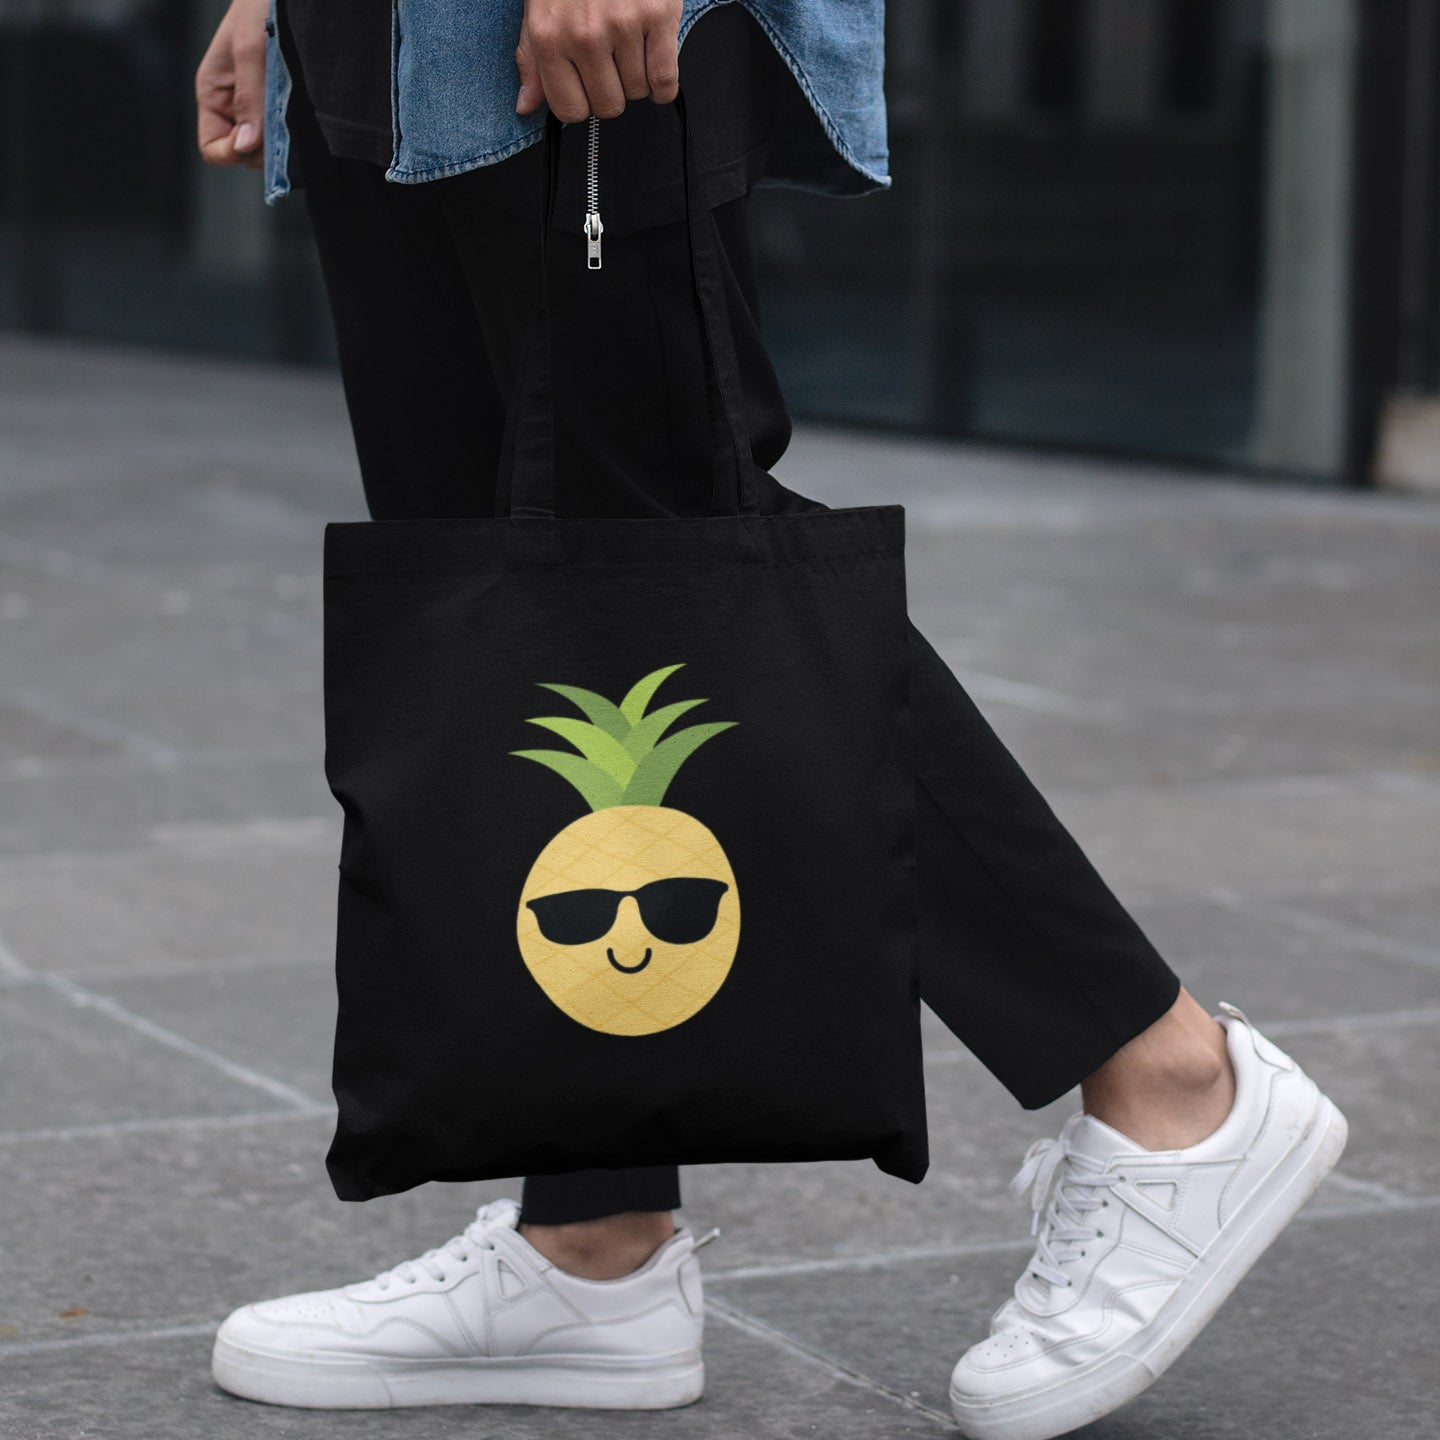 The Pineapple Everything™ Tote Bag (Black) - The Pineapple Everything